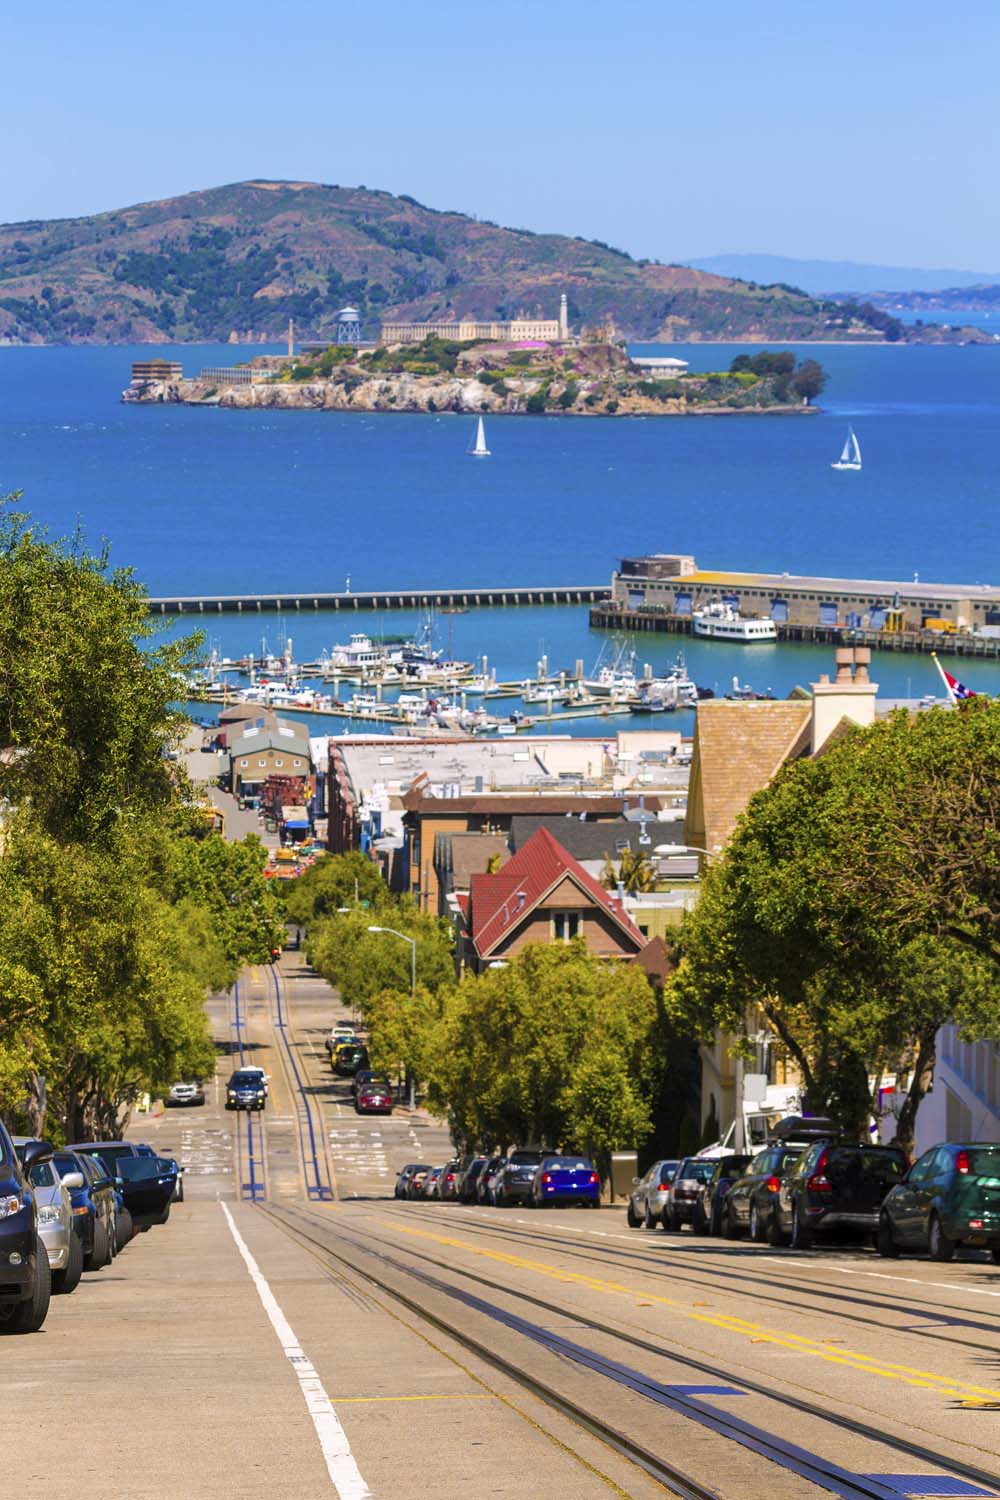 San francisco Hyde Street and Alcatraz island